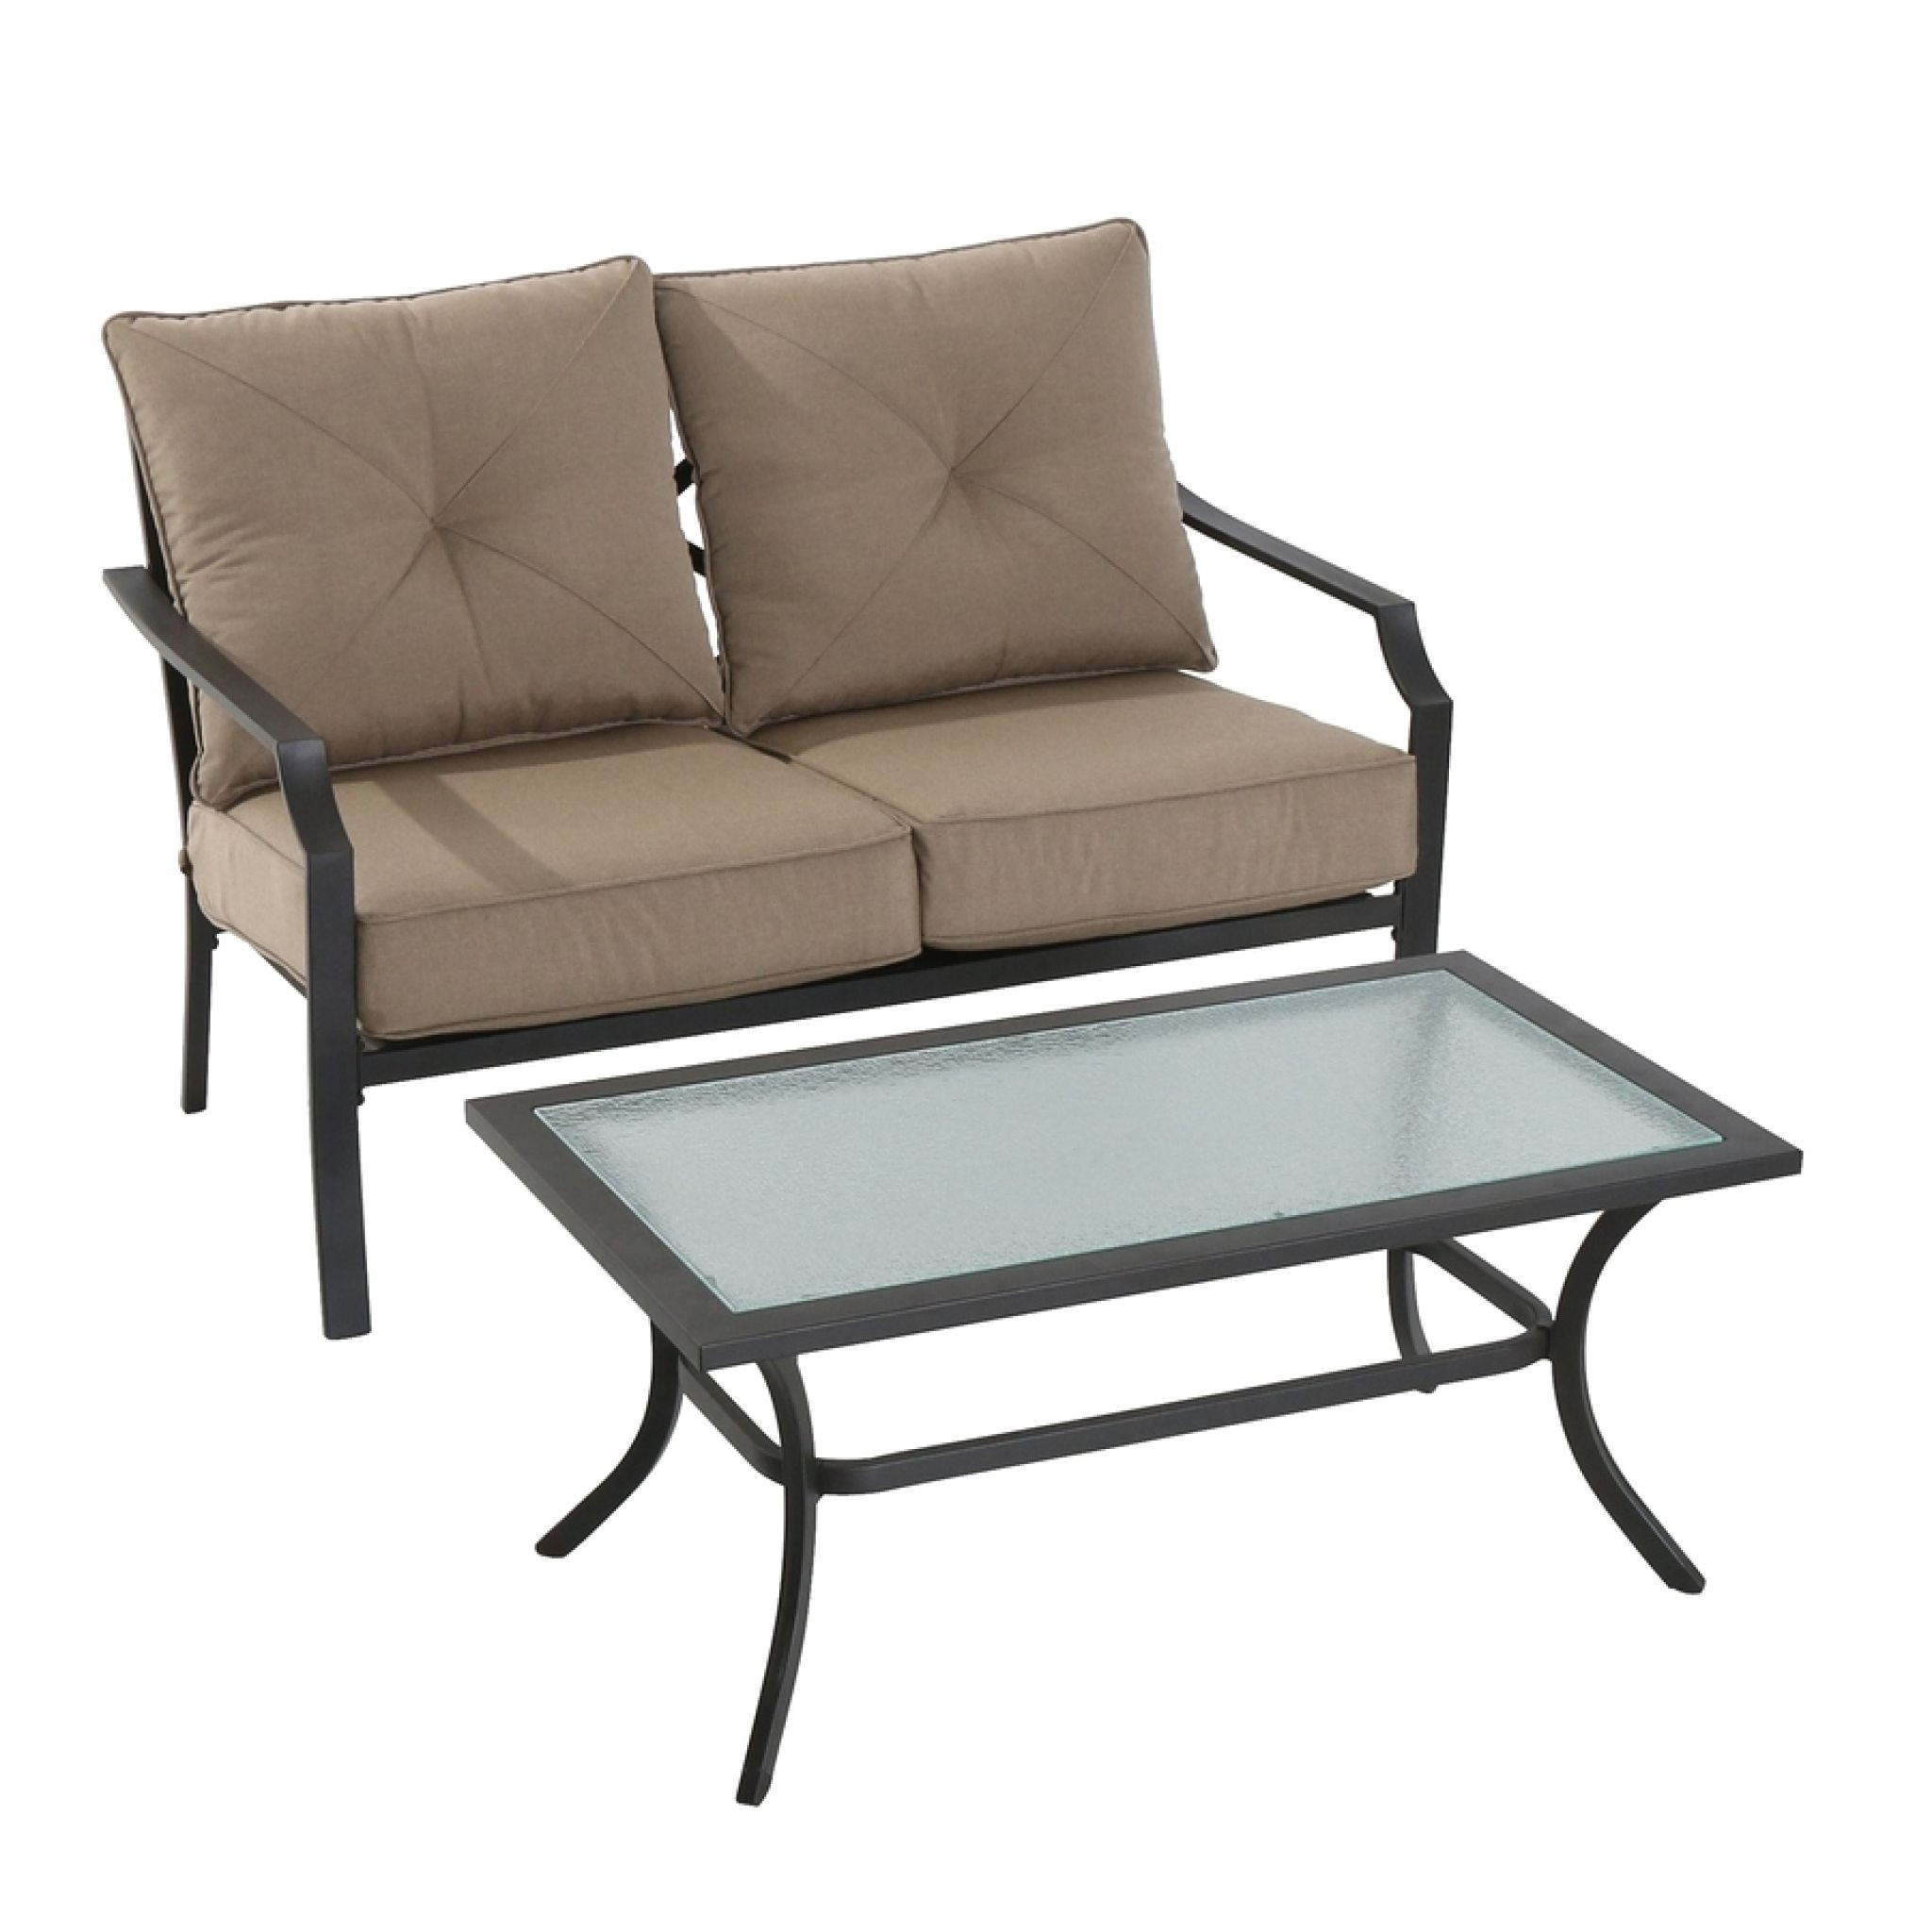 Lawn Chairs at Lowes Home Design Lowes Outdoor Patio Furniture ... on lowes garden trellis, lowes garden stones, lowes garden fencing, lowes garden designer, lowes garden doors, lowes table, lowes garden walls, lowes garden decoration, lowes garden decor, lowes garden gates, lowes garden soil, lowes garden treasures, lowes garden chairs, lowes garden tools, lowe's patio furniture, lowes garden accessories, lowes garden arbors, lowes garden tractor, lowes paints, lowes garden windows,